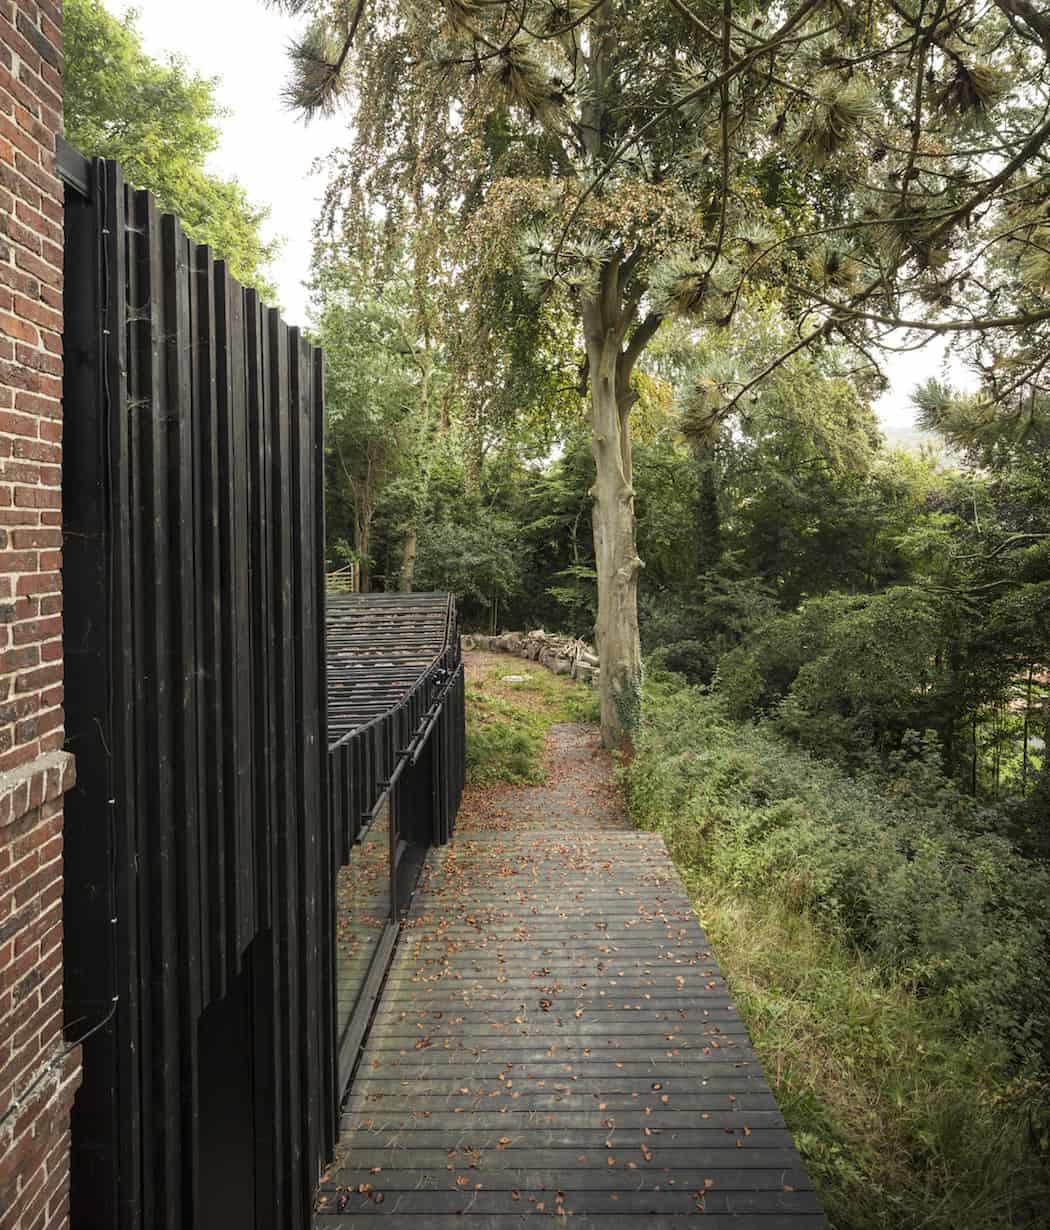 Marchi_BlackHouse_Enchanting_Timber_Home_Nestled_in_The Forests of Normandy01-1050x742 (10)